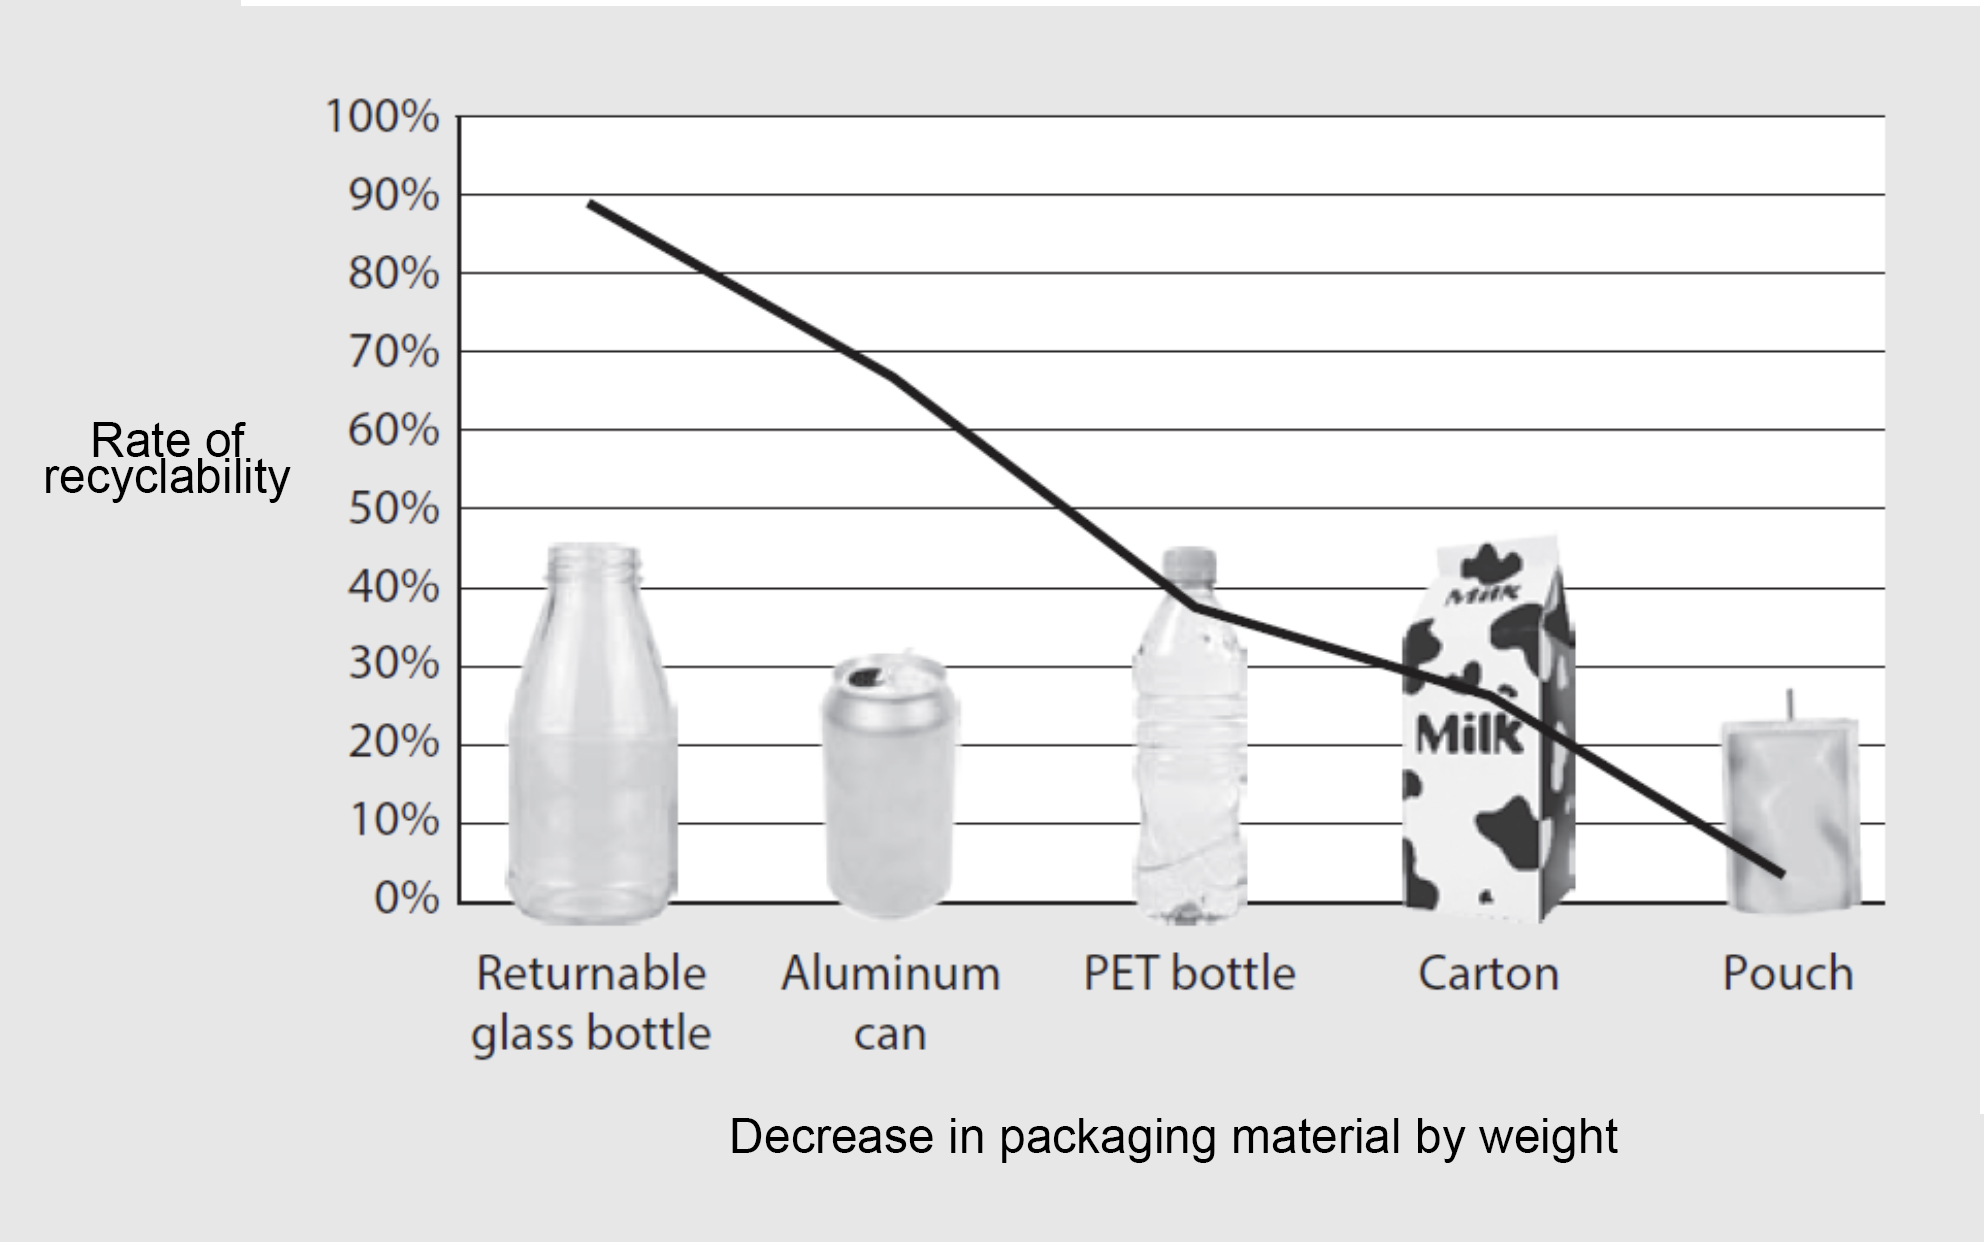 Disposable plastic packaging is cheap and convenient, but is hard to recycle